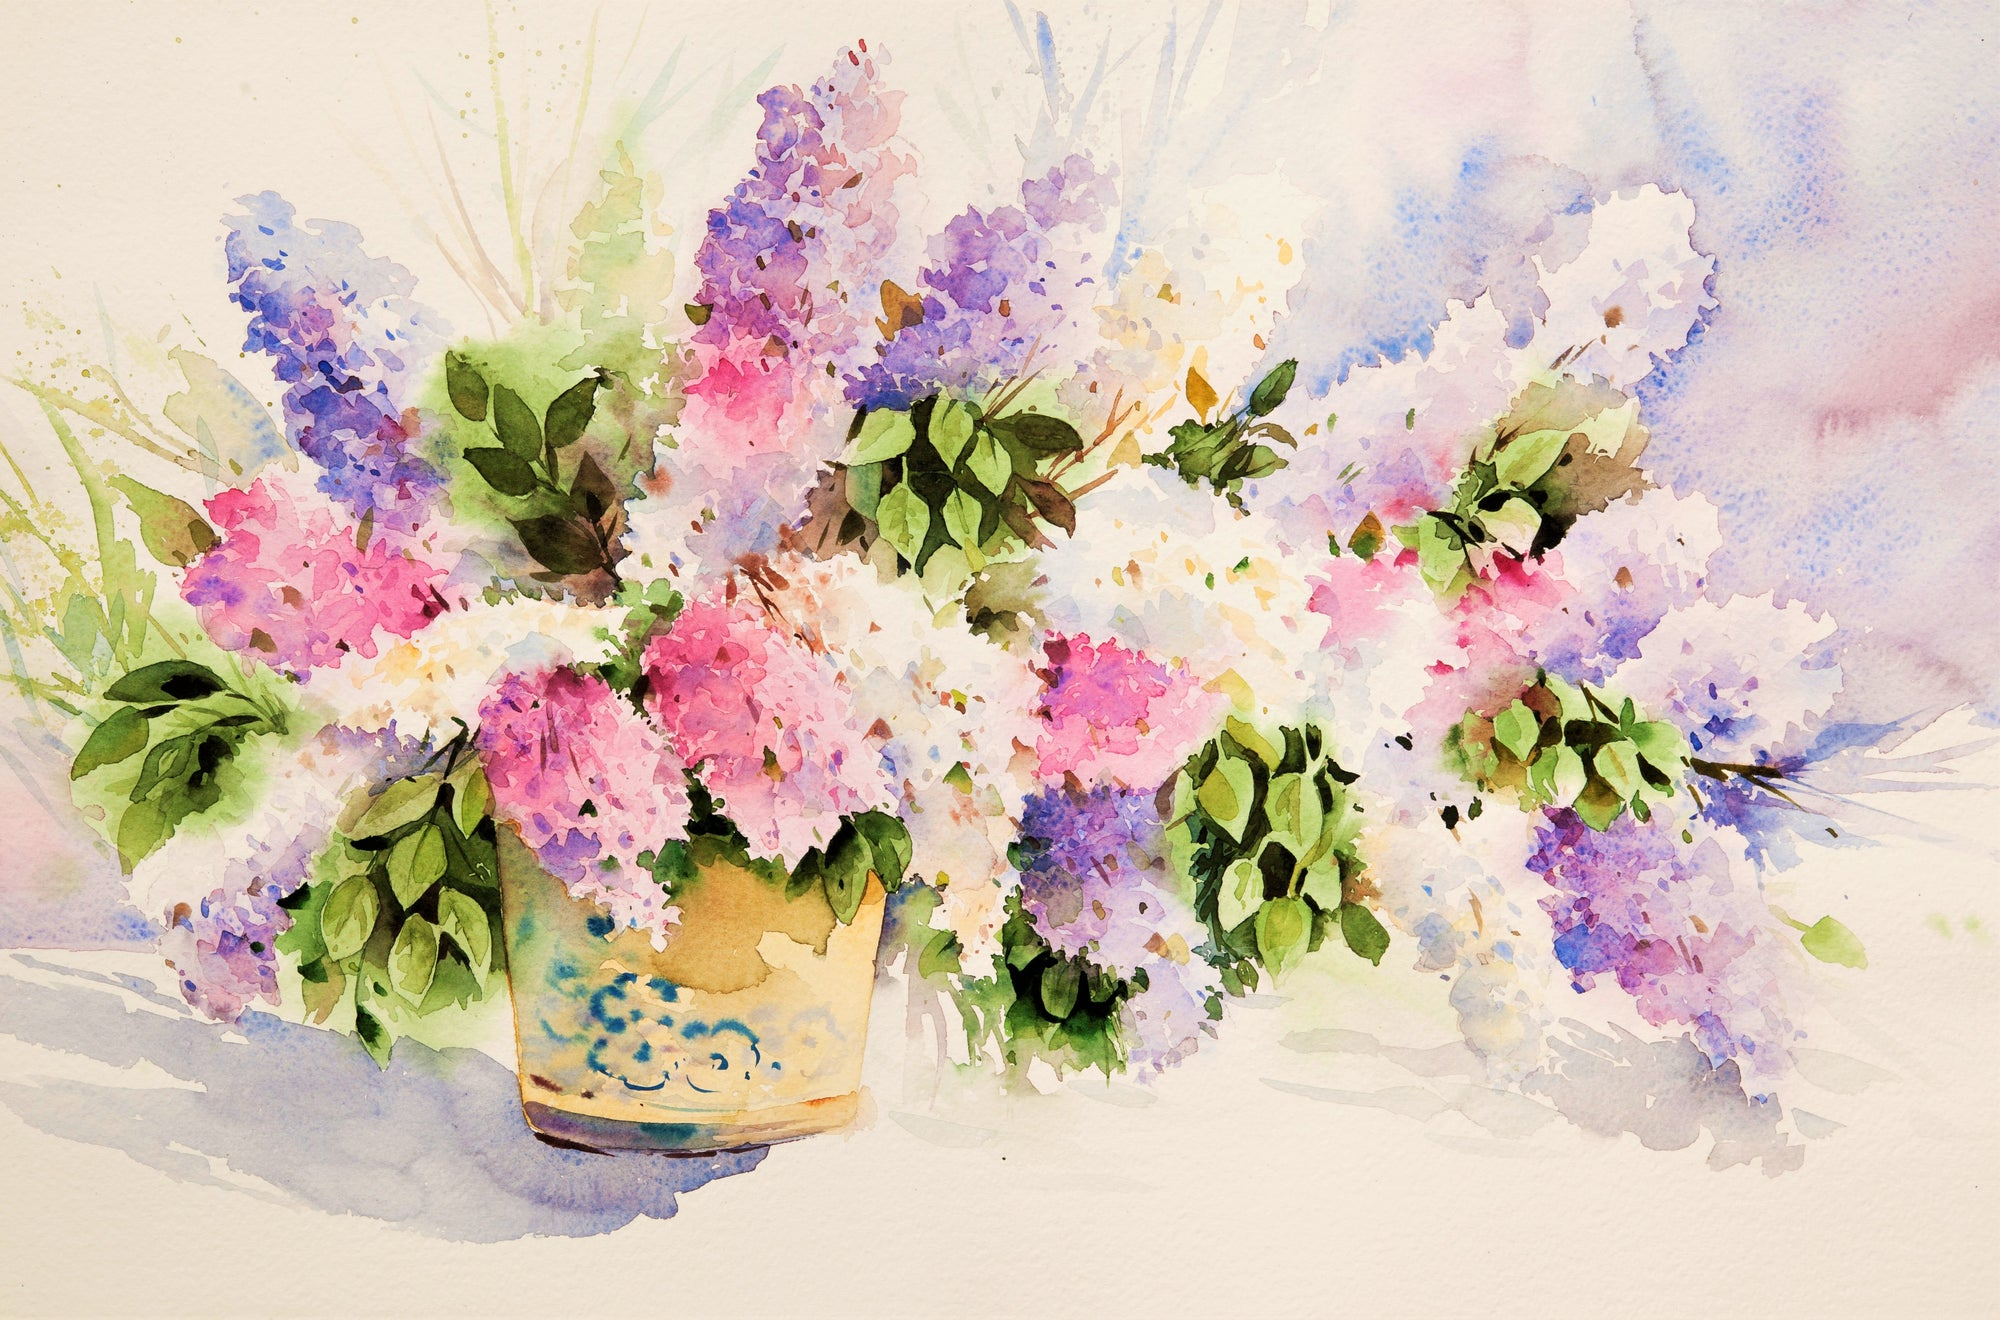 Artszy watercolor freshness painting